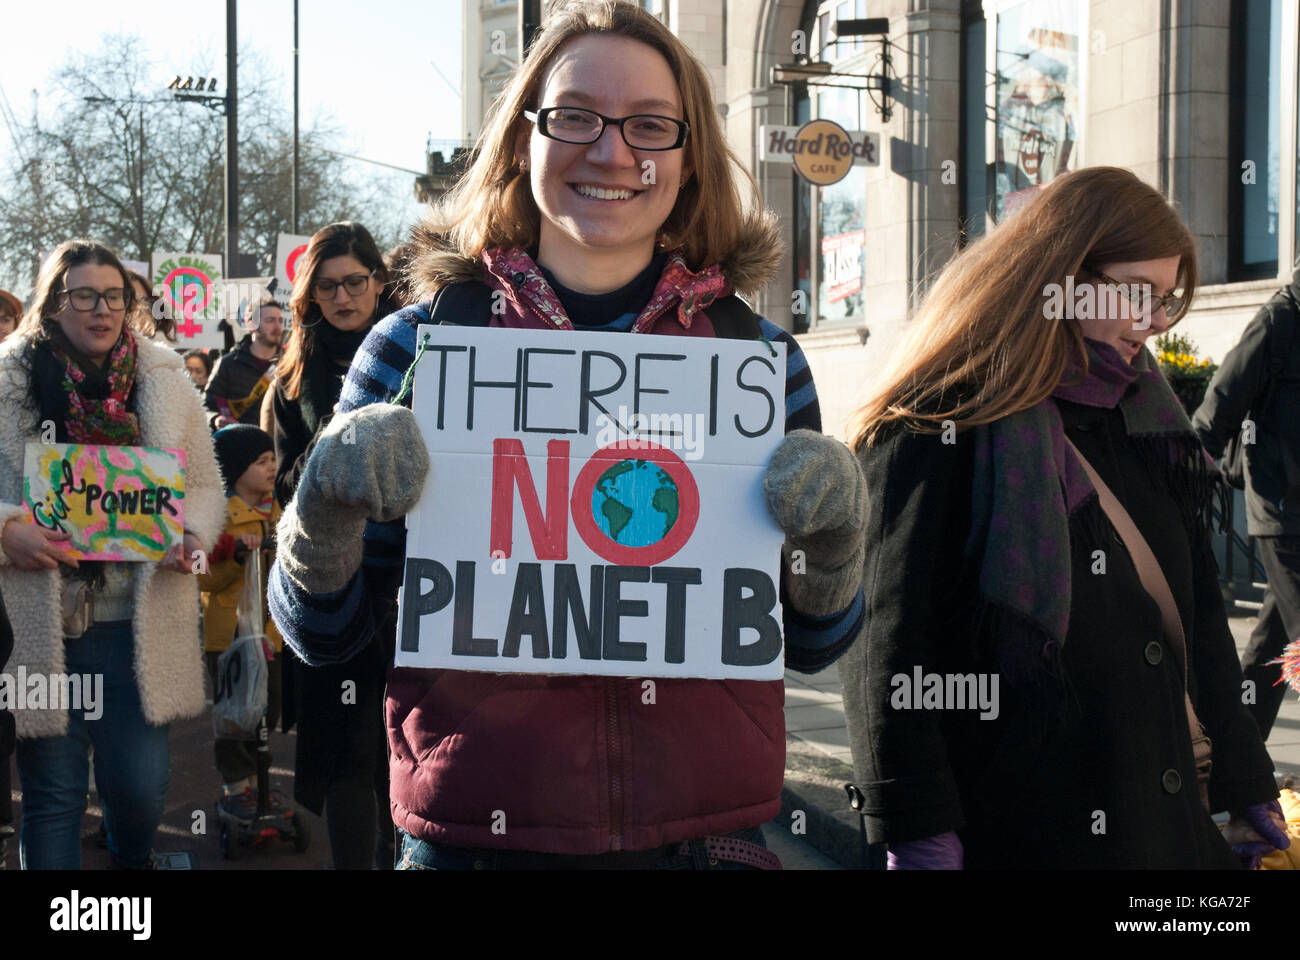 A young smiling activist holding a placard 'There is no Plant B' with a picture of planet Earth, as a comment - Stock Image